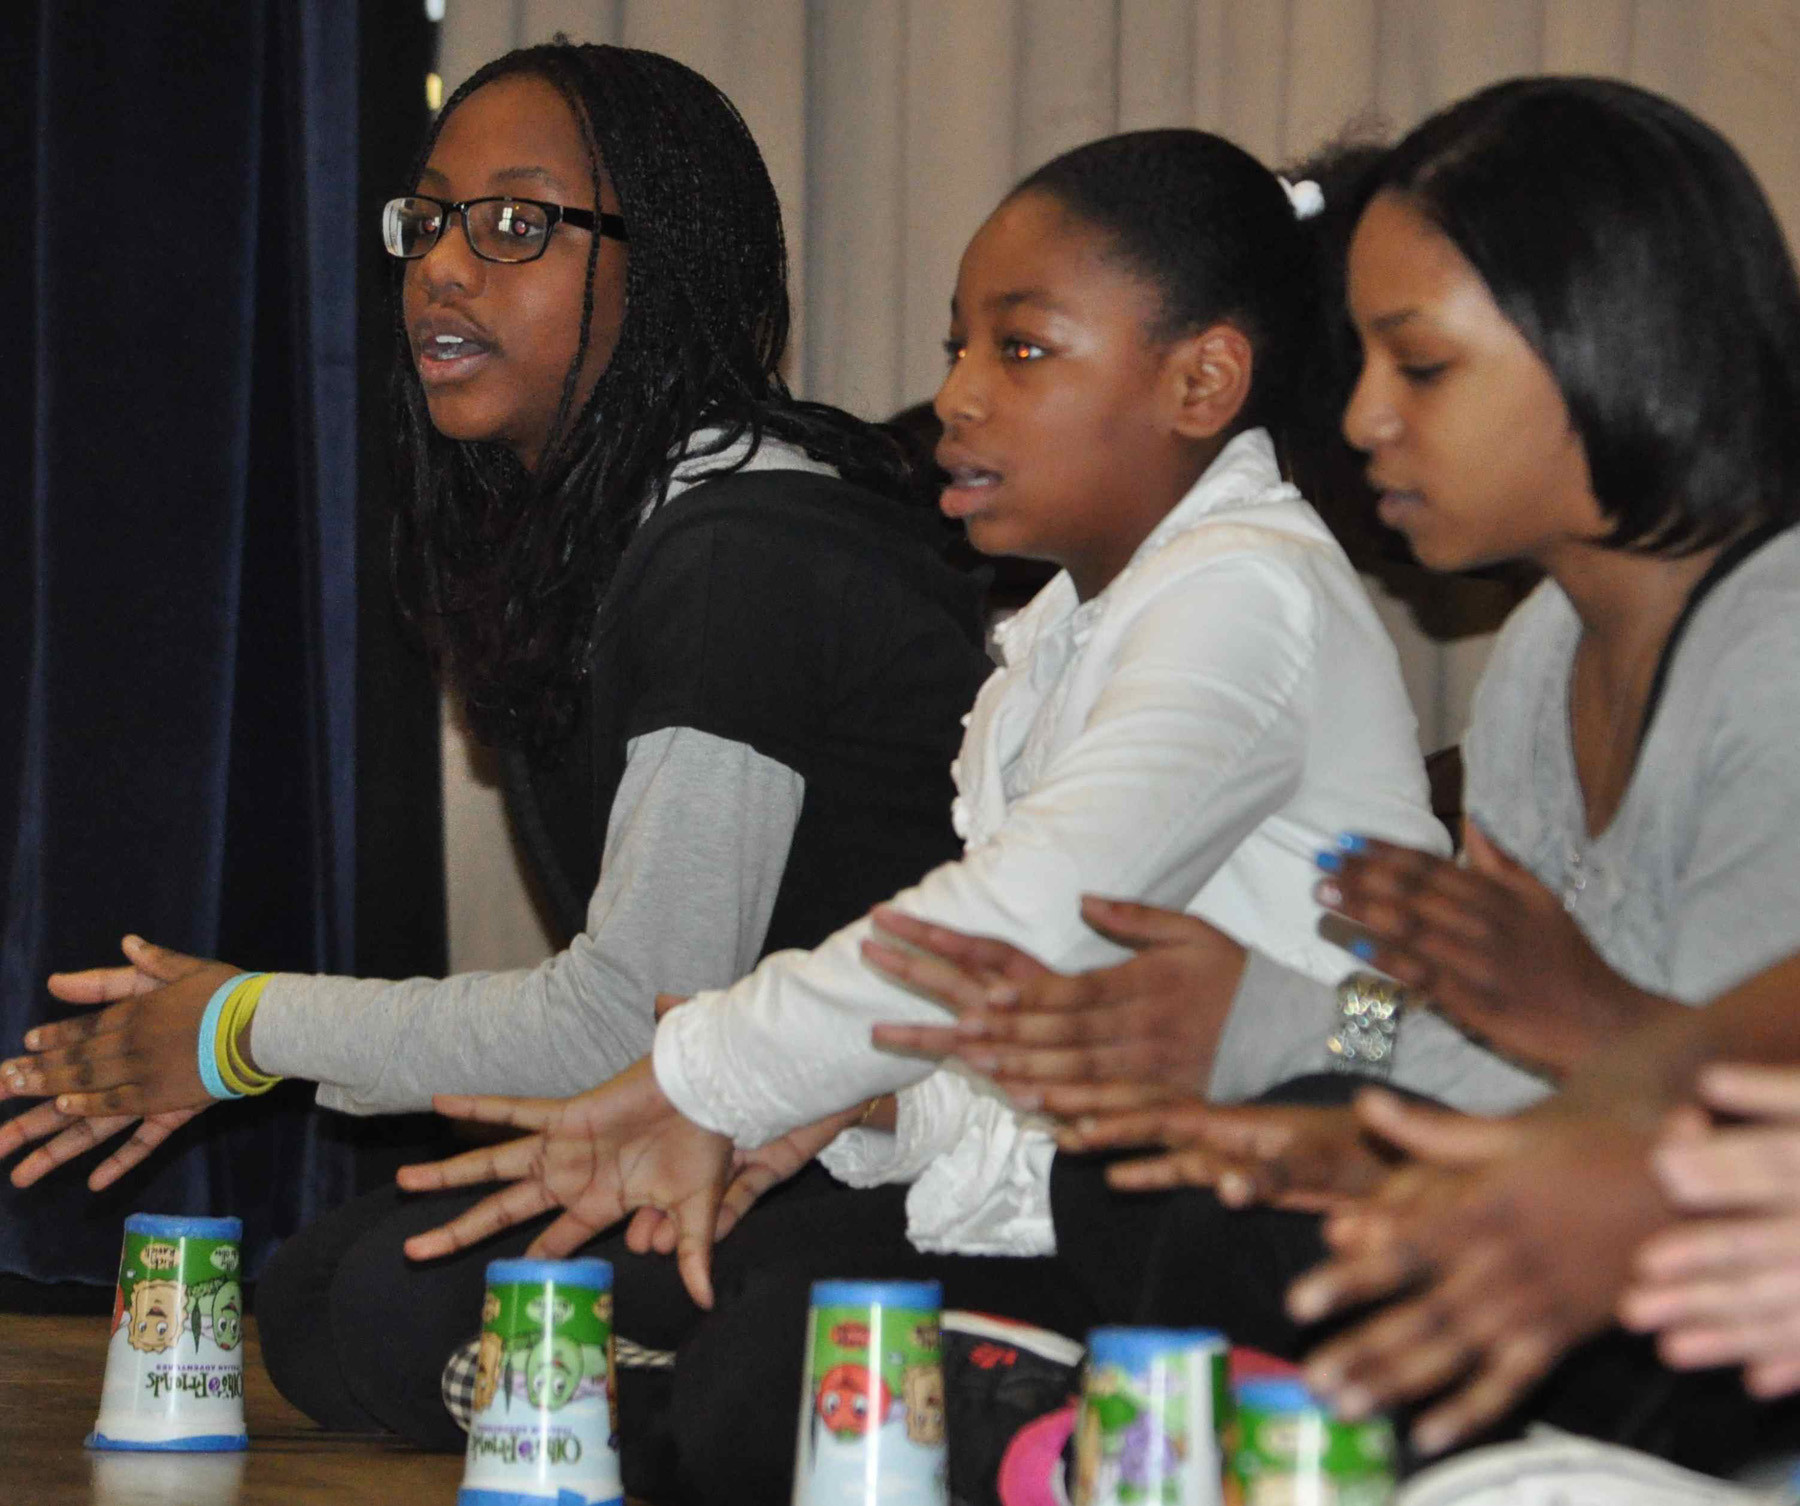 Sixth-graders at Gotham Avenue School in Elmont performed �The Cup Song� on March 15 to celebrate the upcoming spring season.